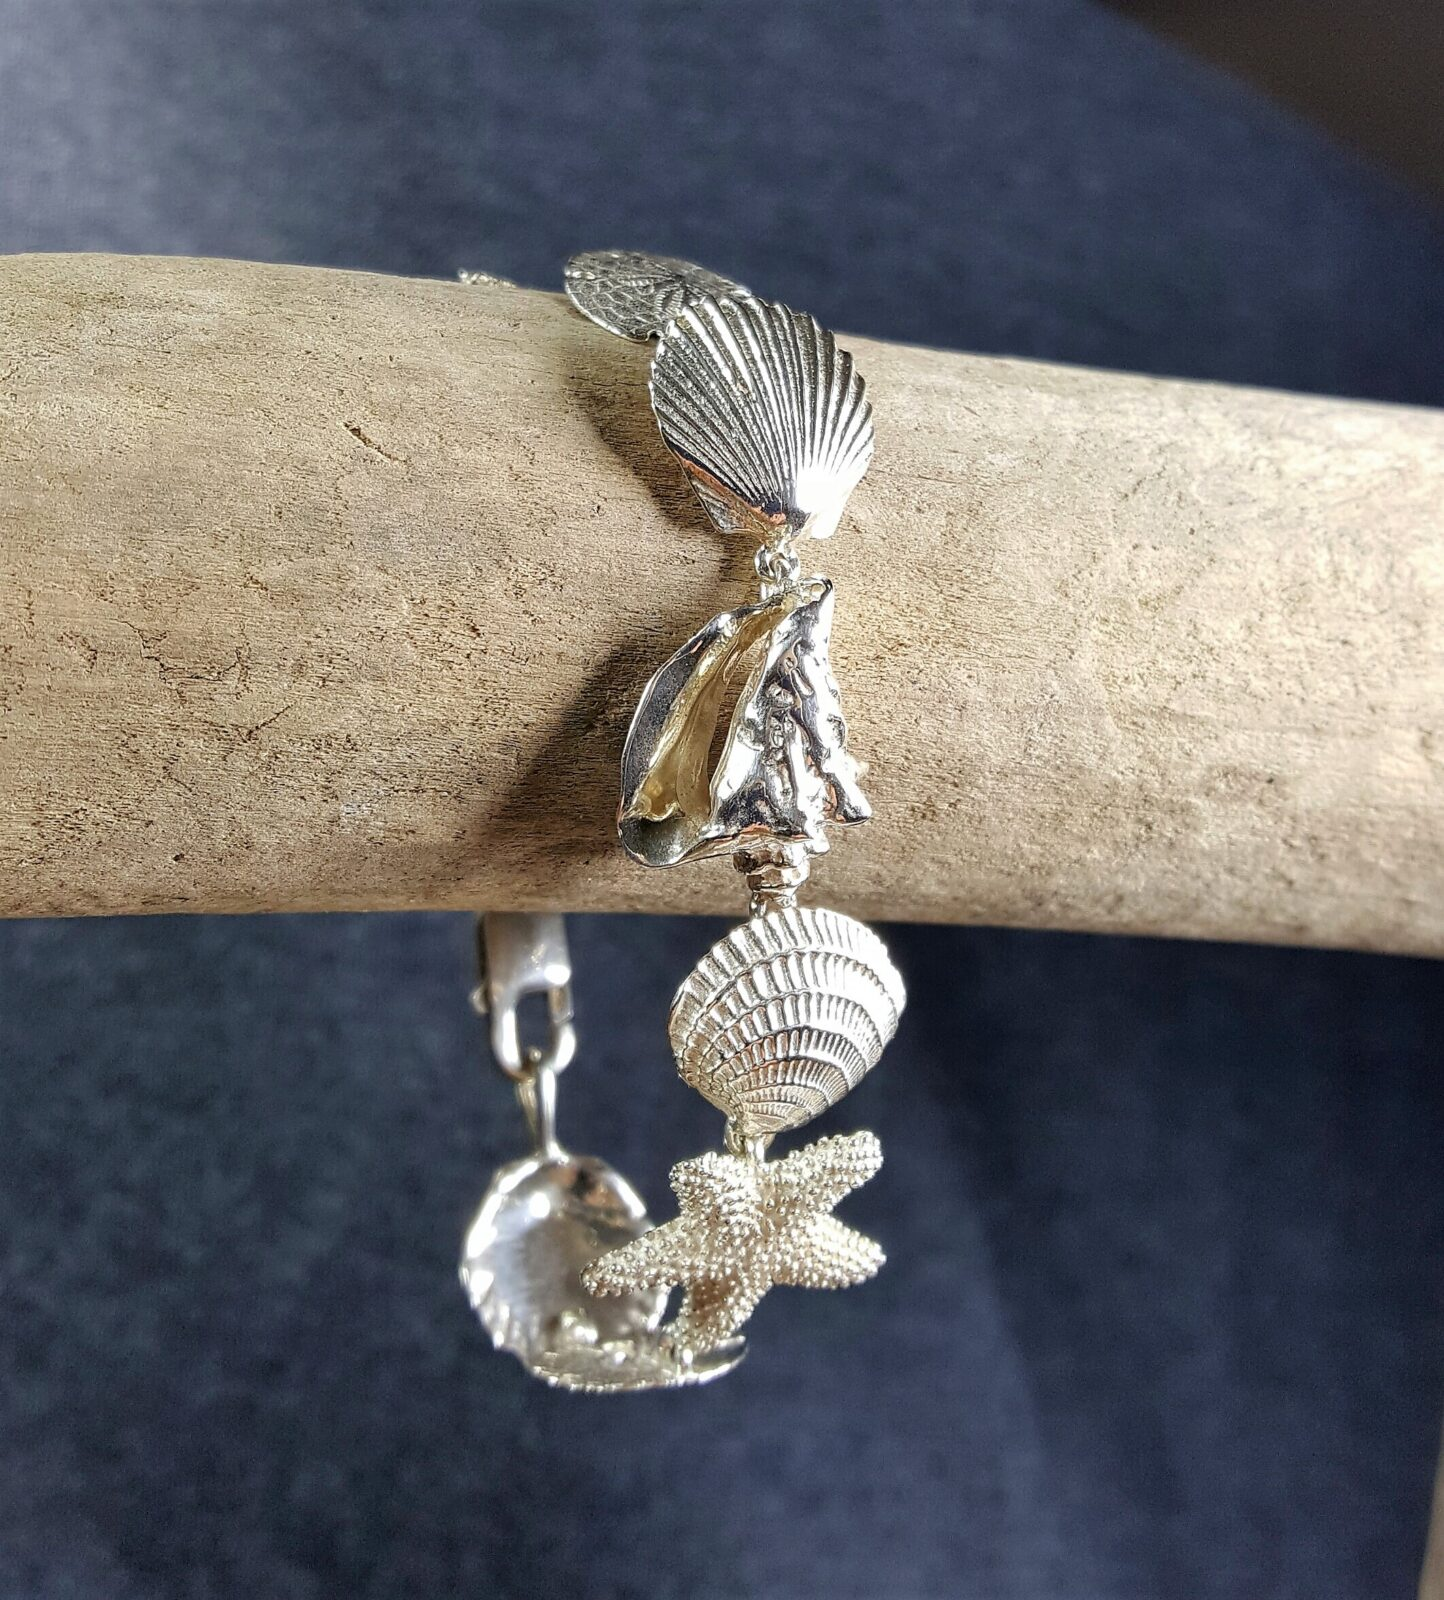 Conch Clam Starfish Sand Dollar & Scallop Bracelet Sterling Silver sizes 7-8 inch